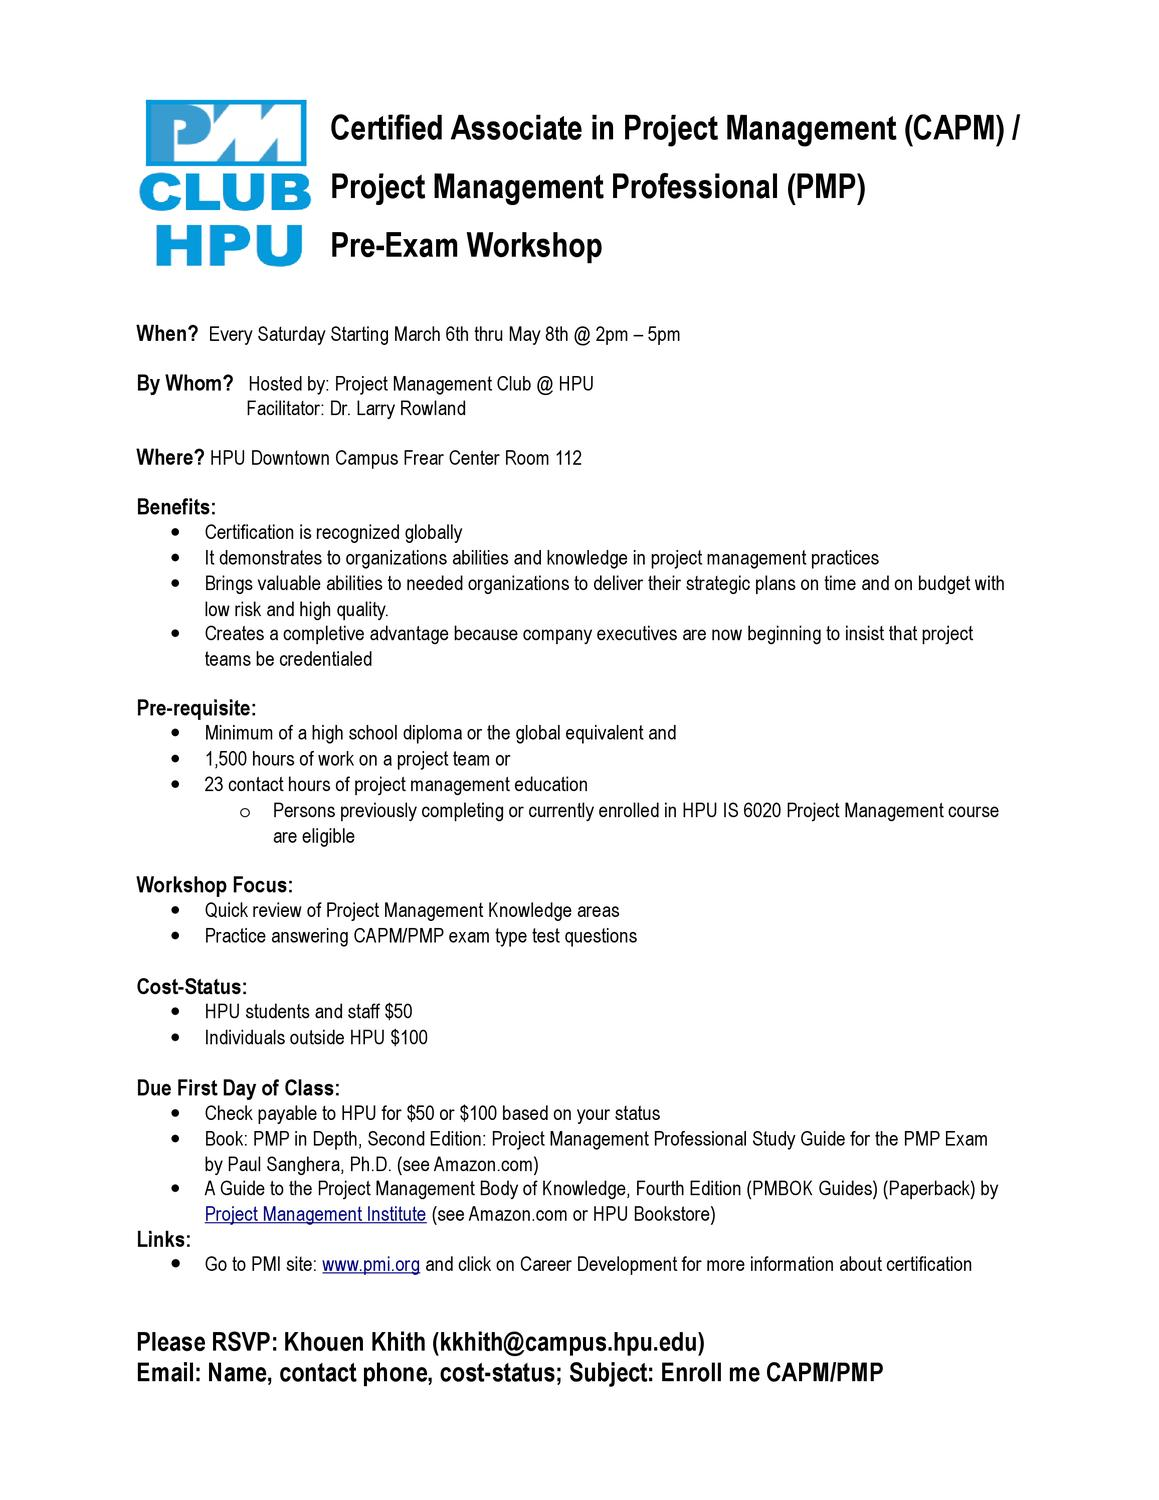 Capmpmp Workshop Flyer By Pmclub Hpu Issuu